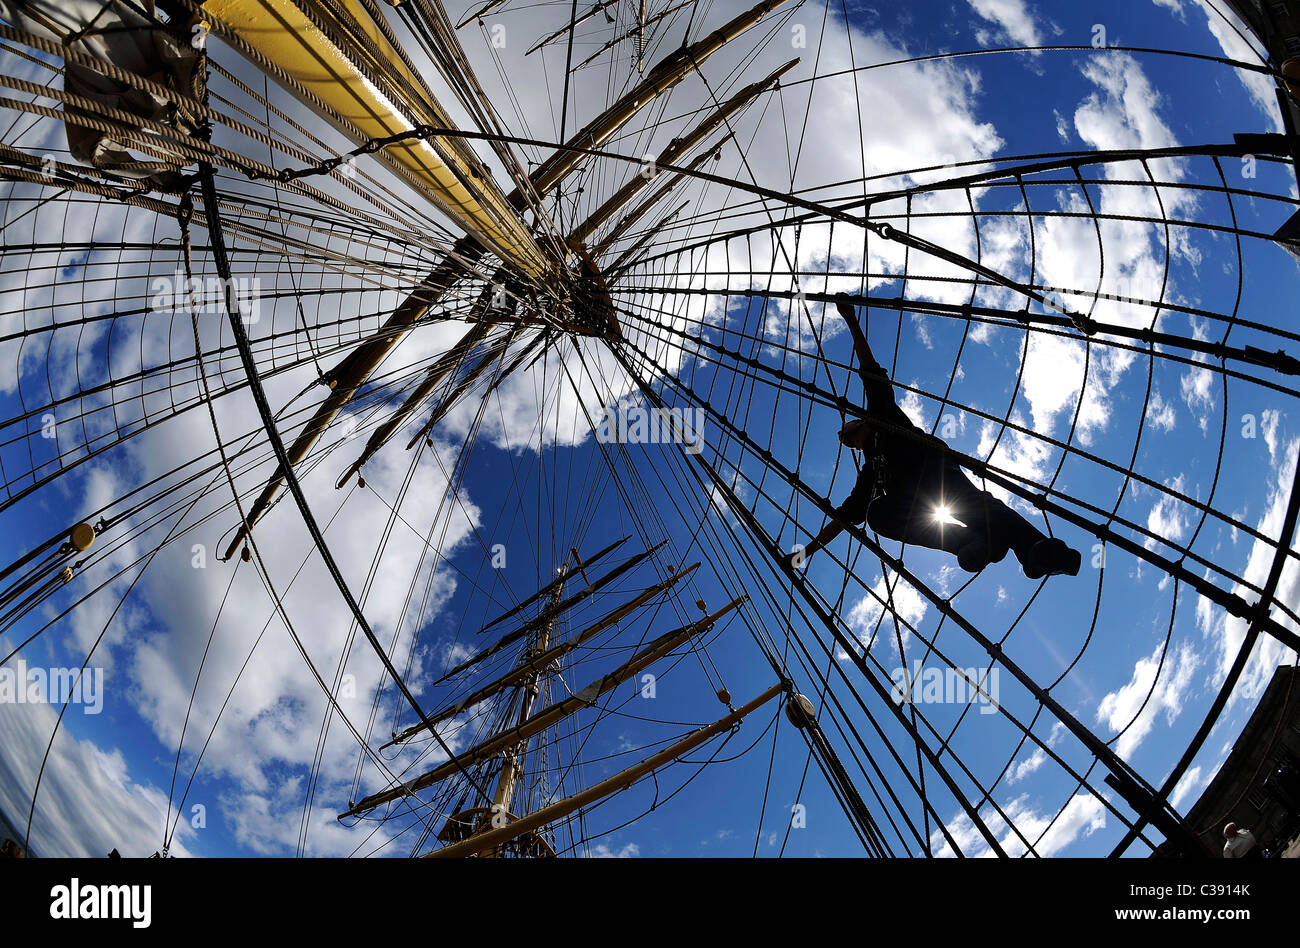 A crew member climbs the rigging on the Danish tall ship Georg Stage as it sails up the River Clyde in Scotland. - Stock Image